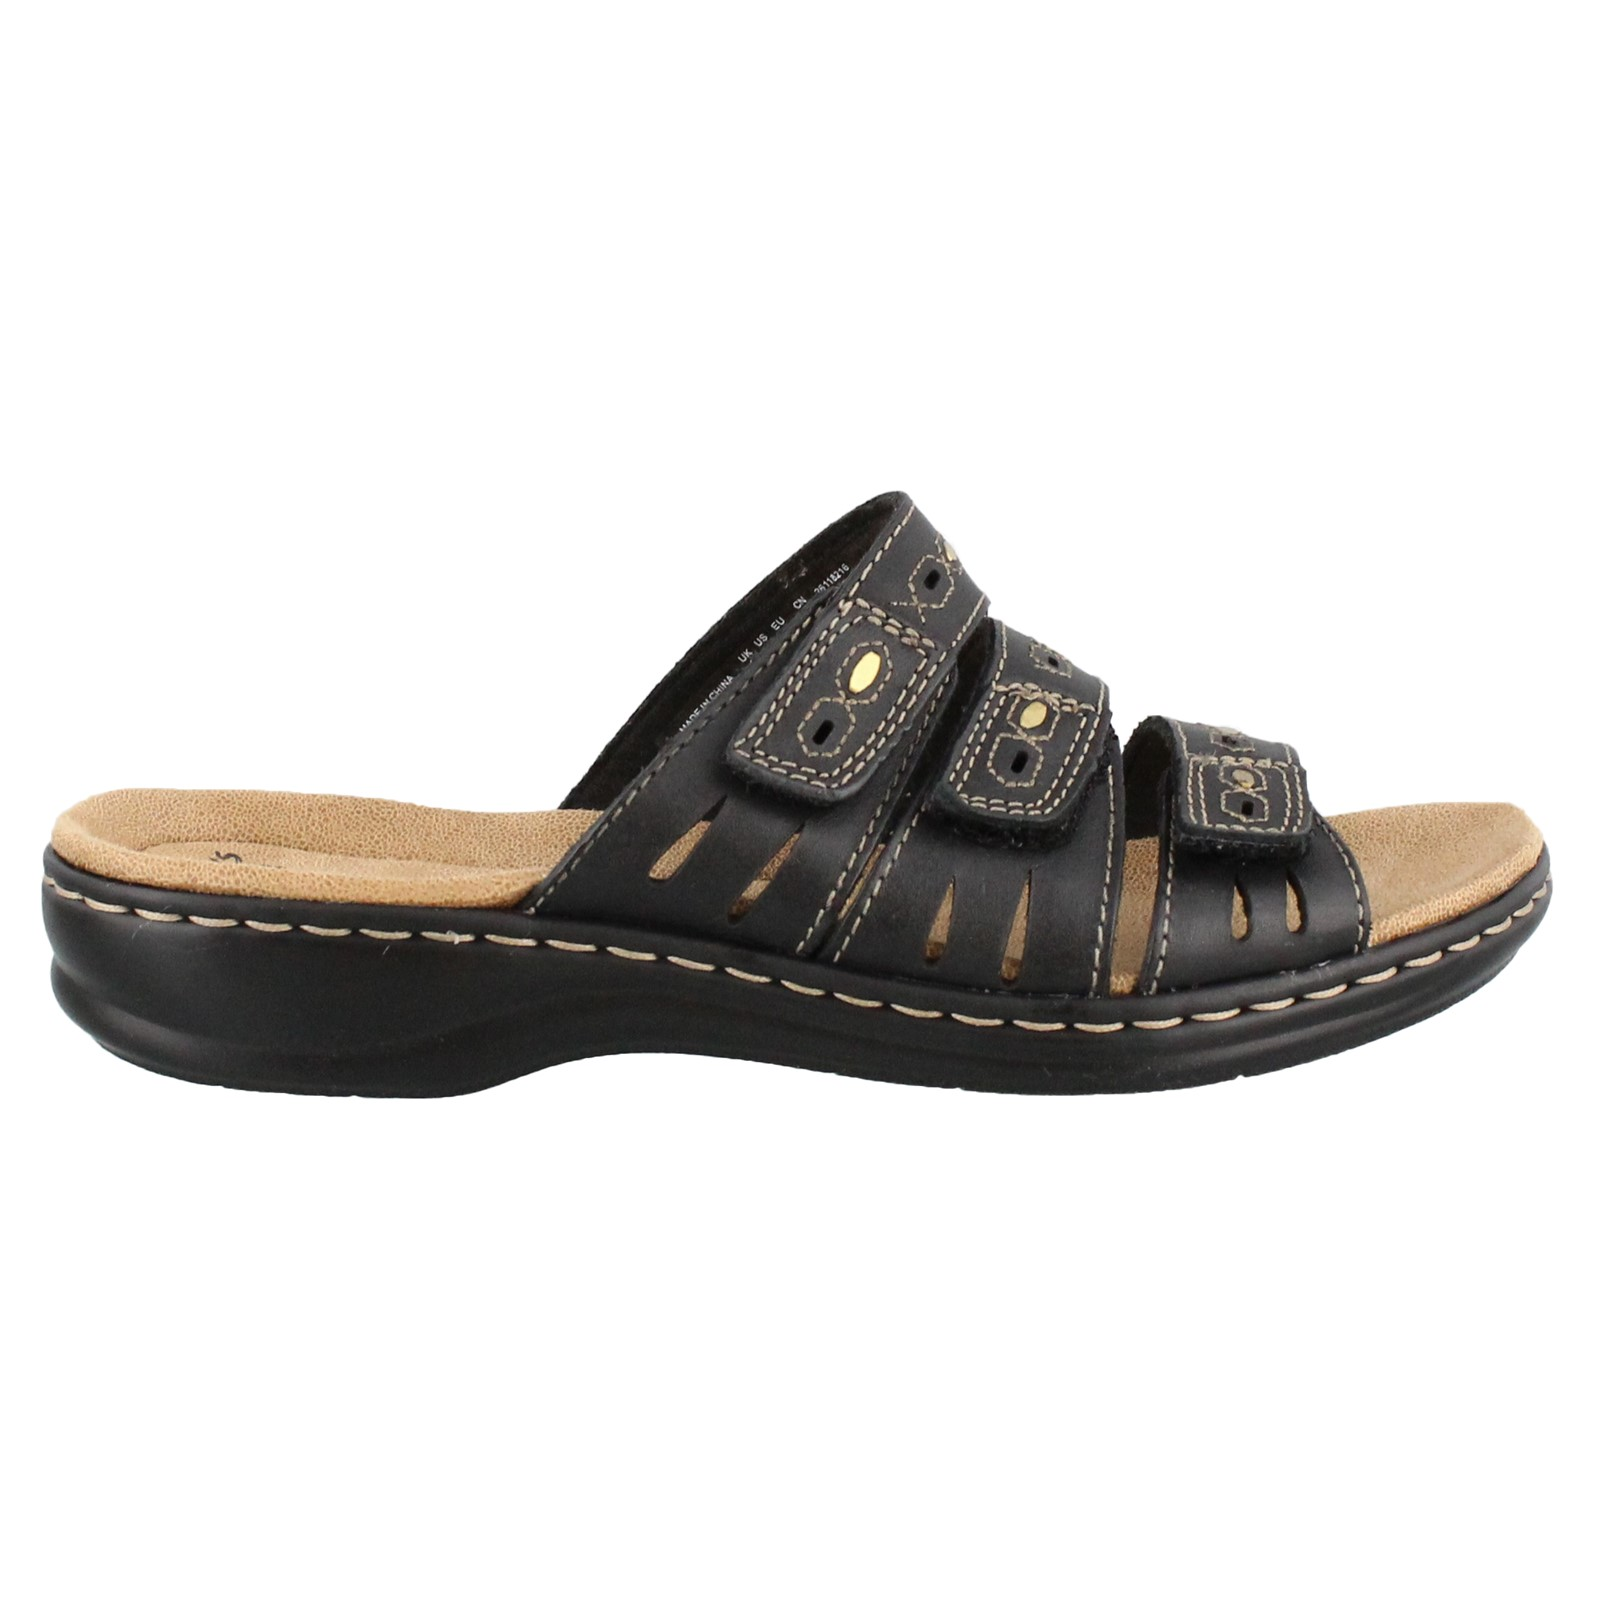 Women's Clarks, Leisa Broach Slide Sandal